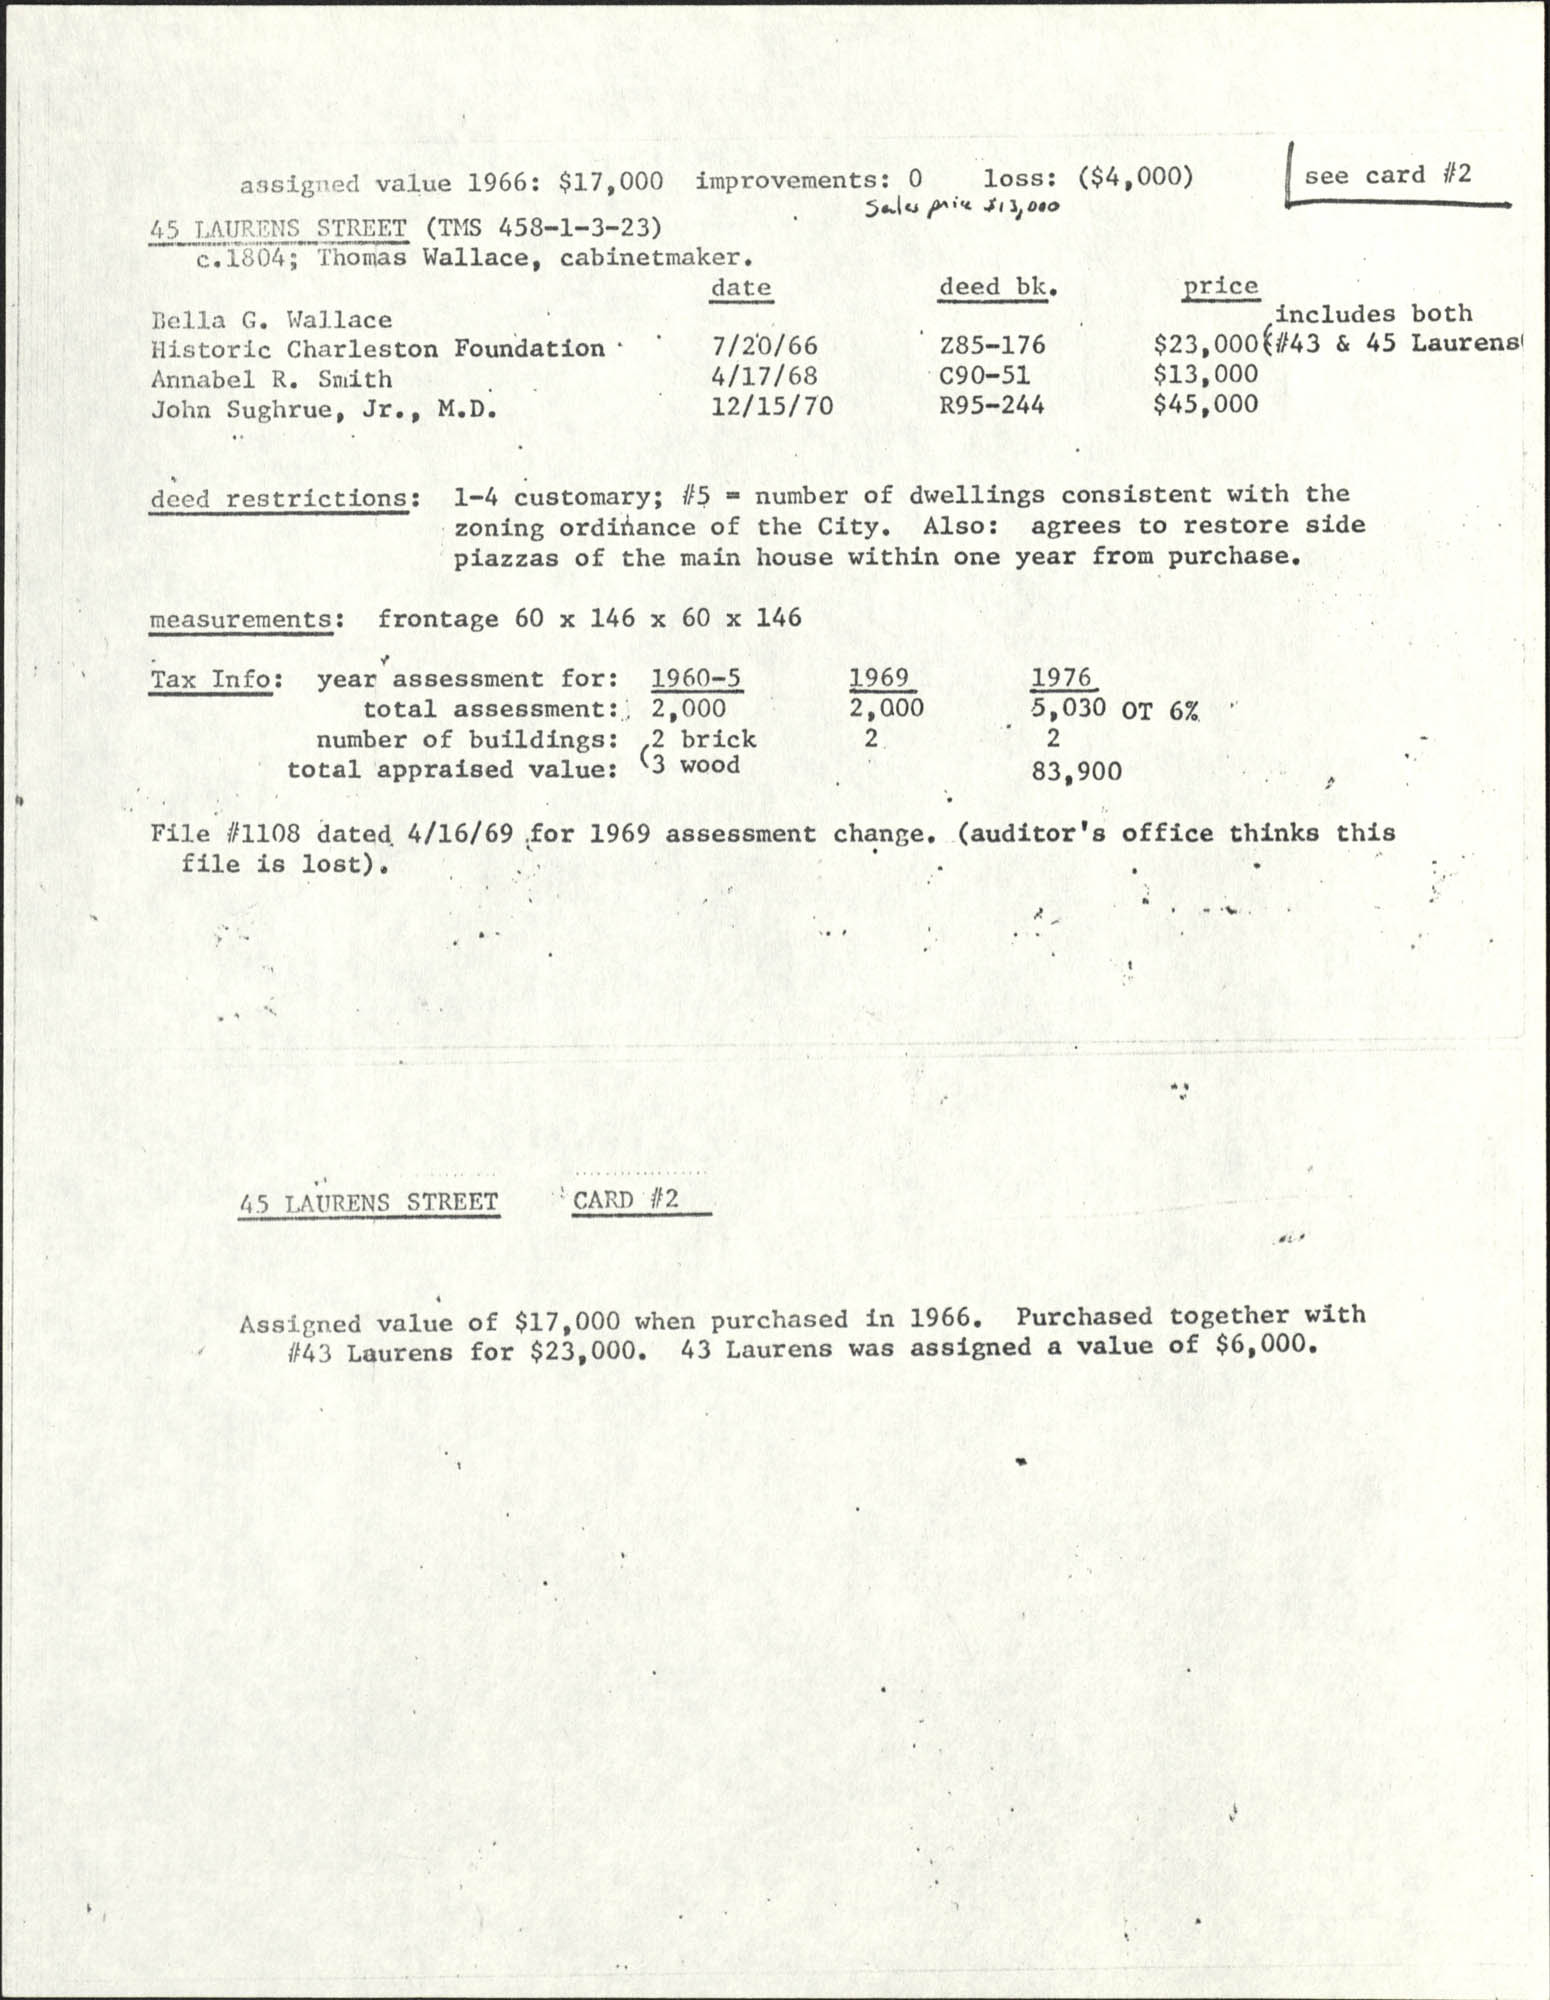 Deed records for 45 Laurens Street